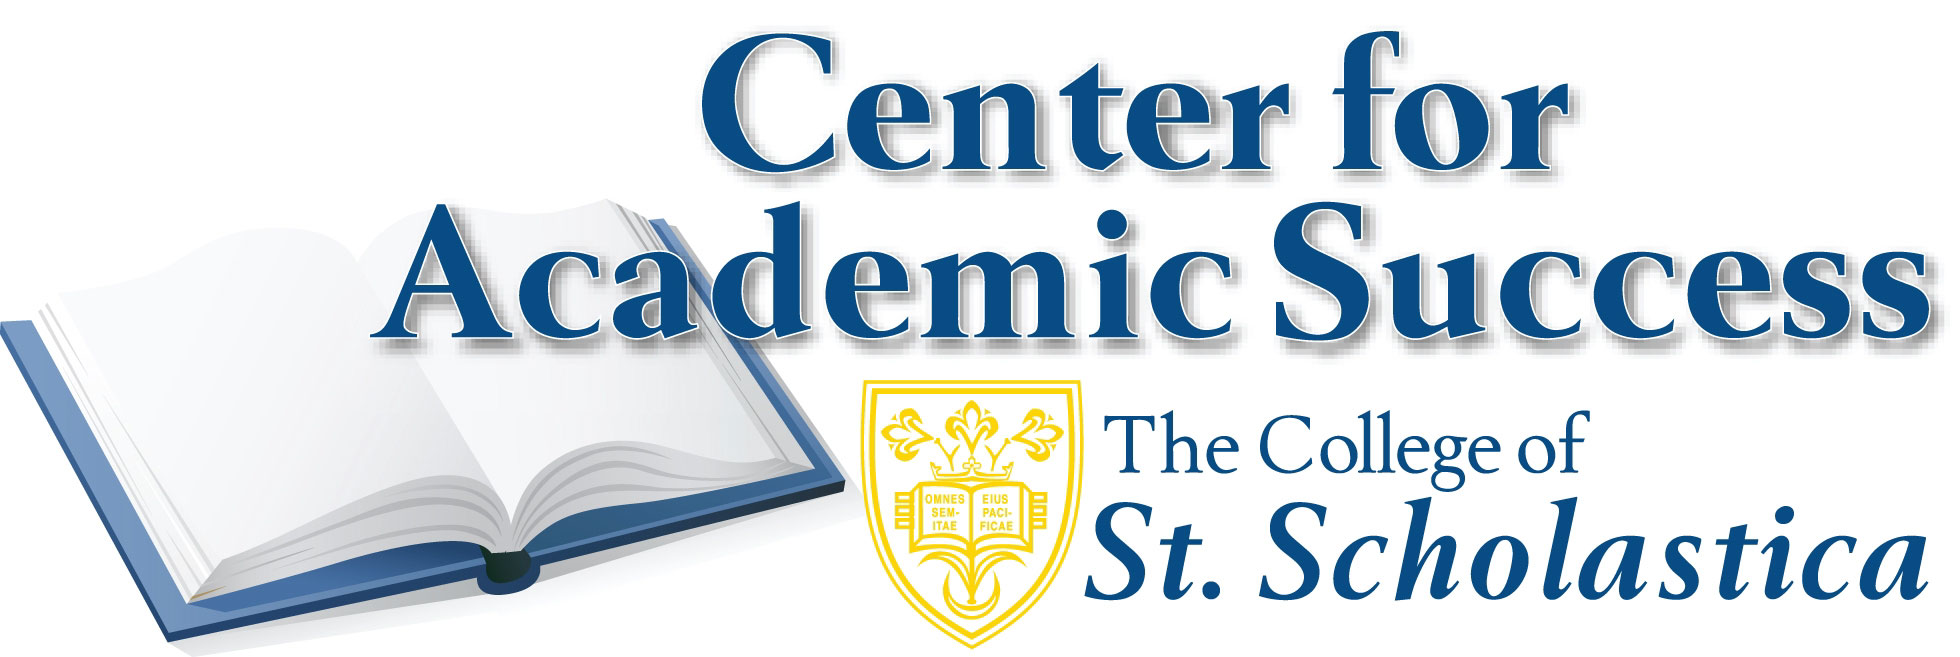 center for academic success